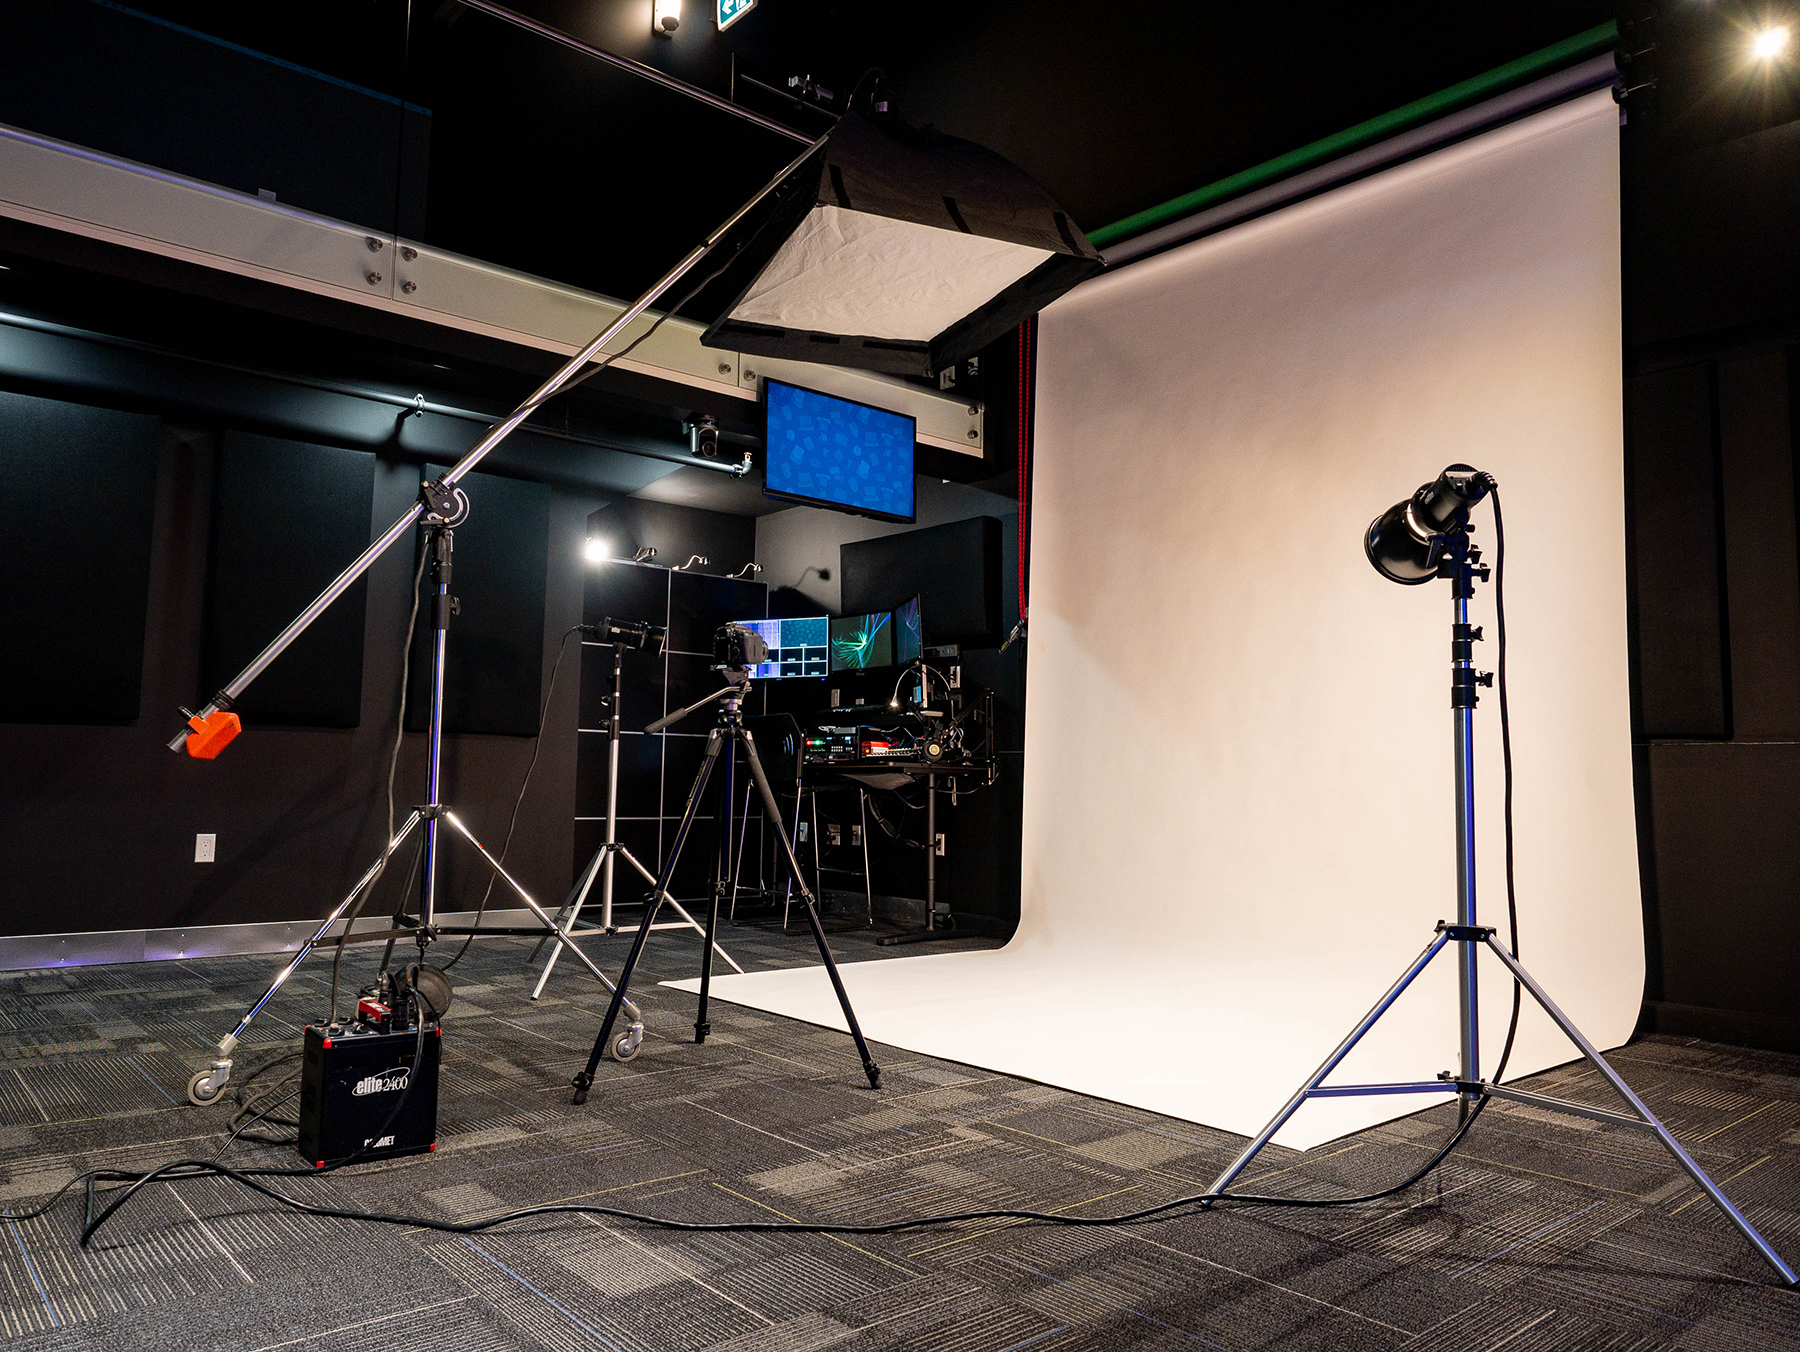 The Cowork Chilliwack Studio Theatre is ideal for photography and video shoots